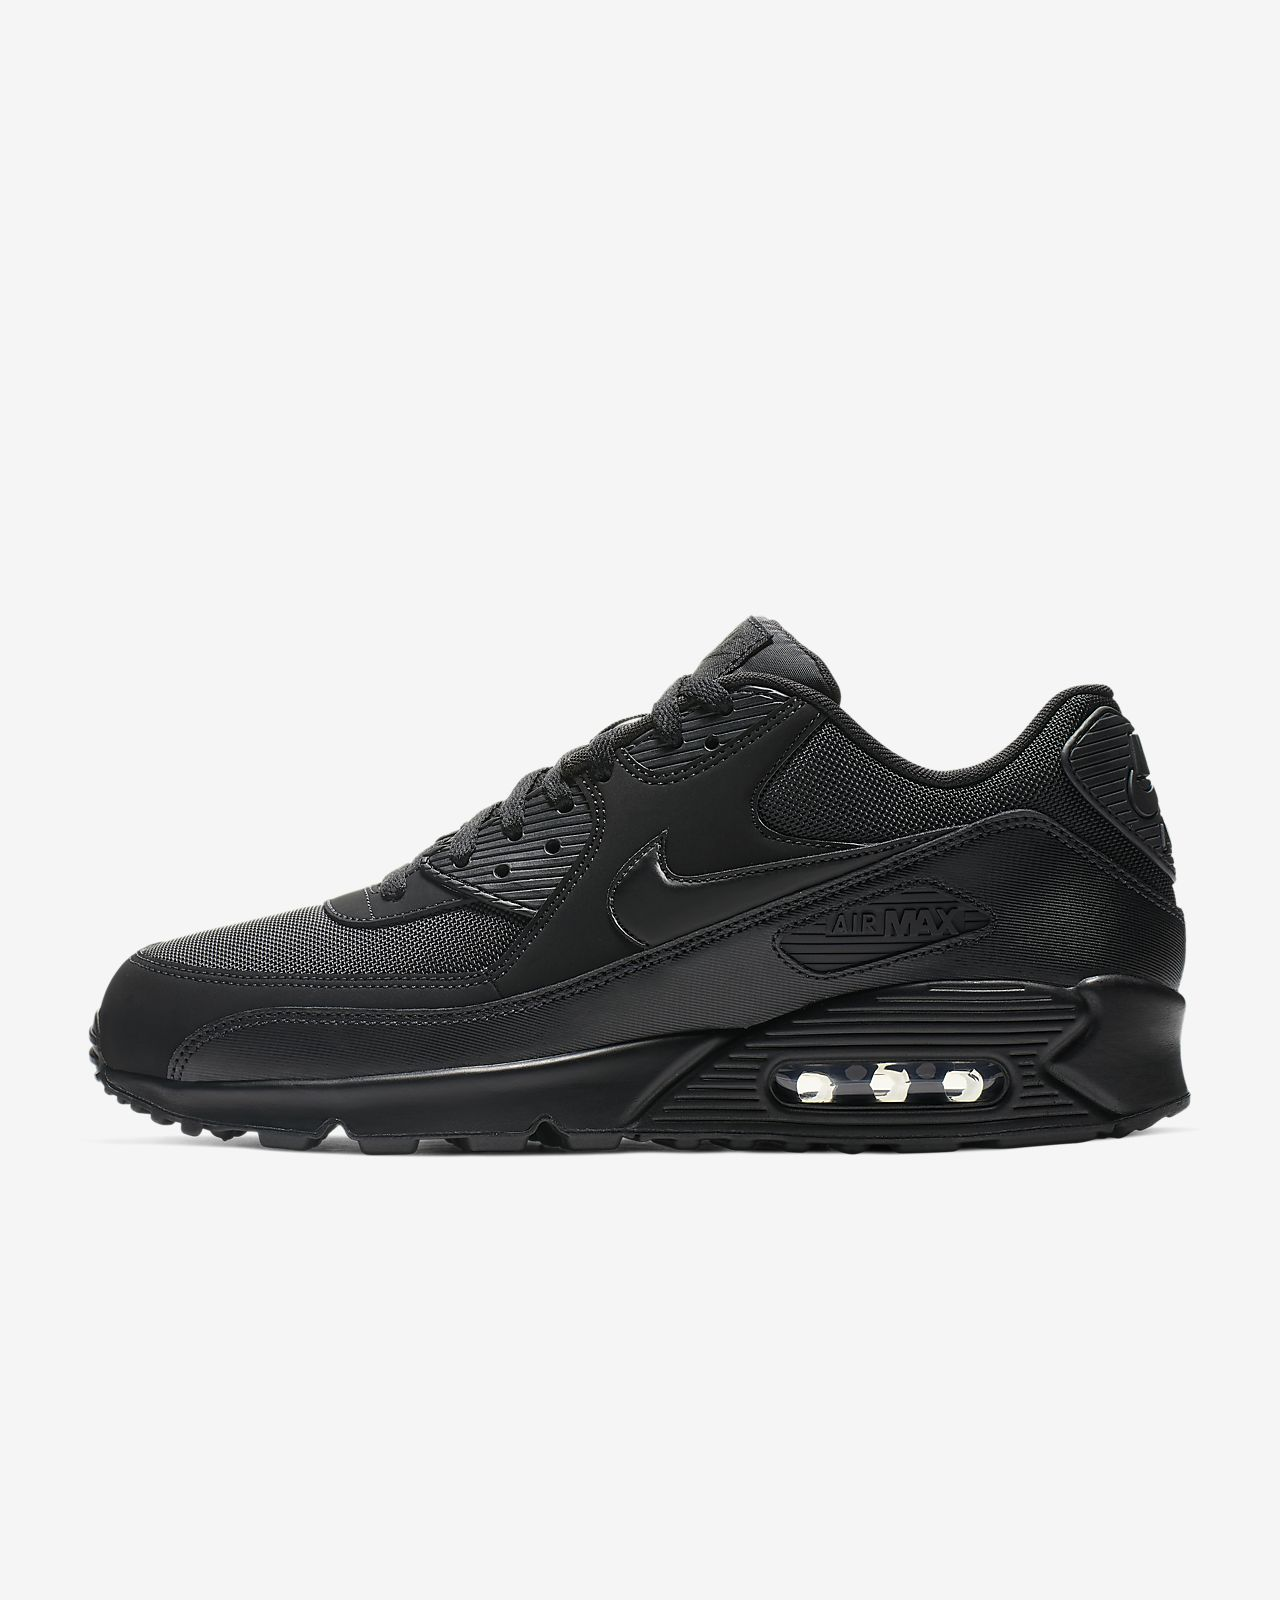 7464d7db18 Nike Air Max 90 Essential Men's Shoe. Nike.com SG